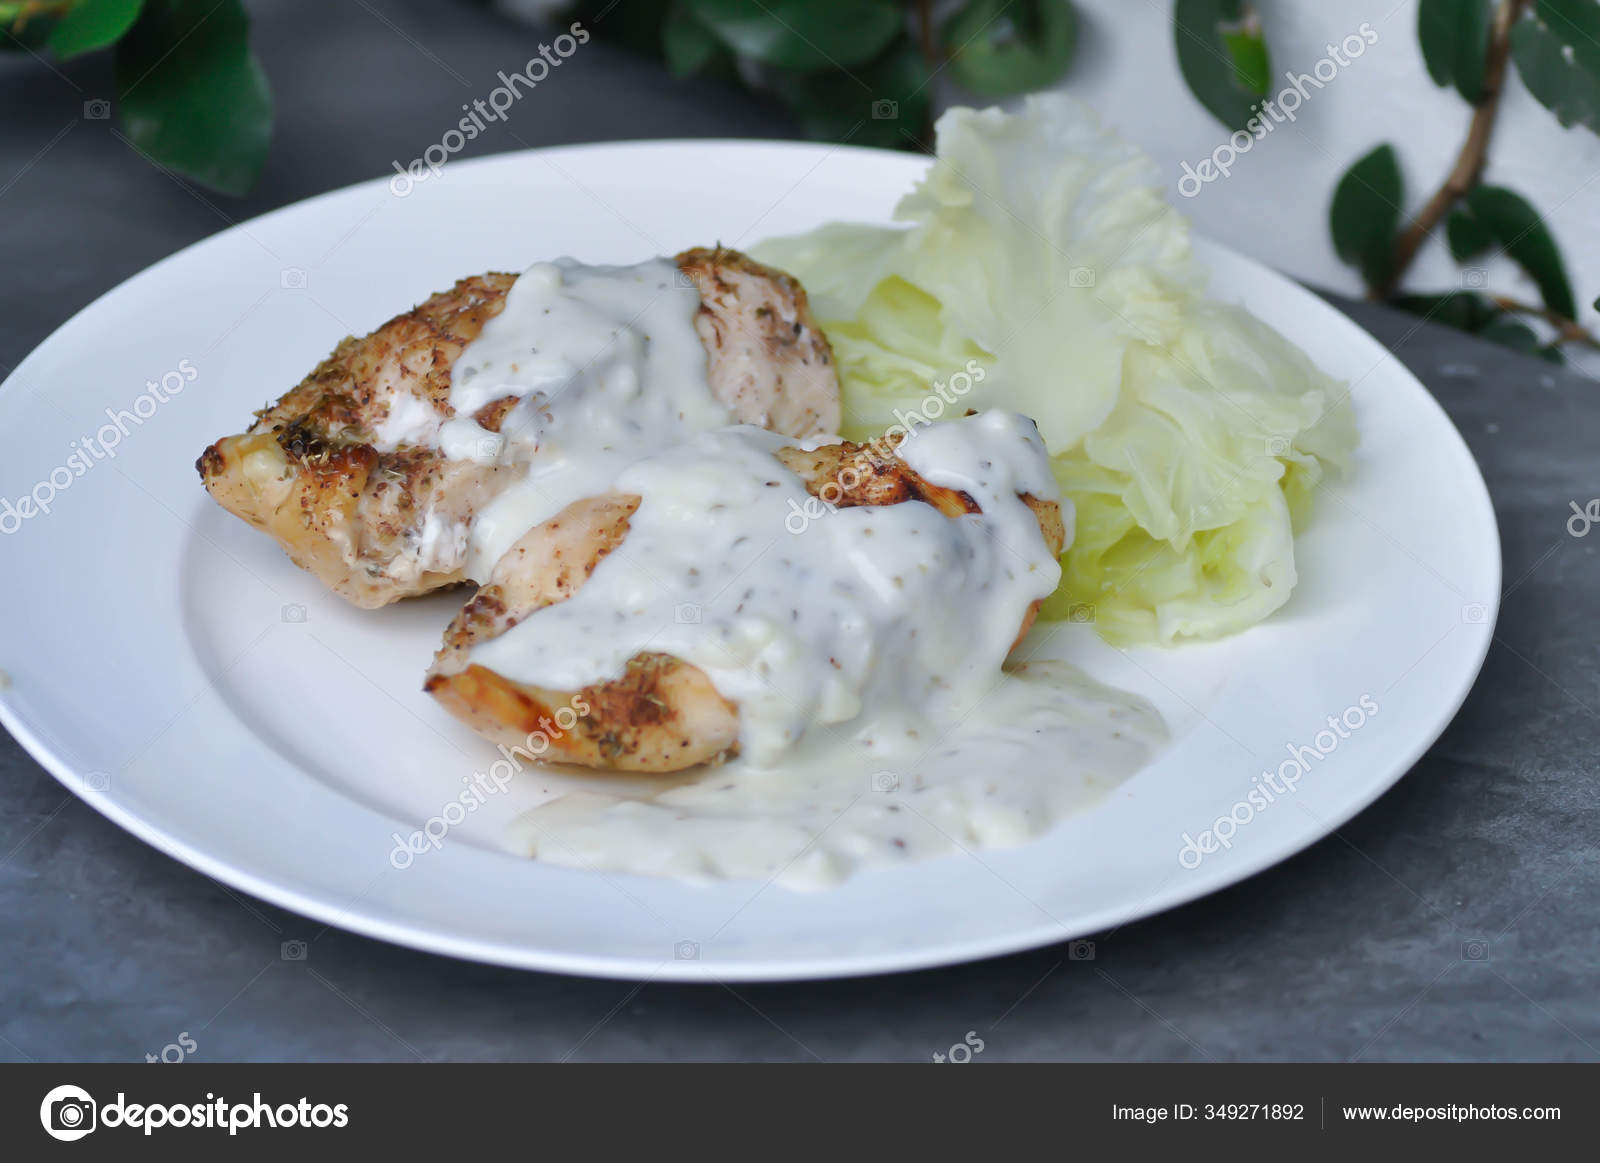 Remoulade Dressing Pictures Remoulade Dressing Stock Photos Images Depositphotos